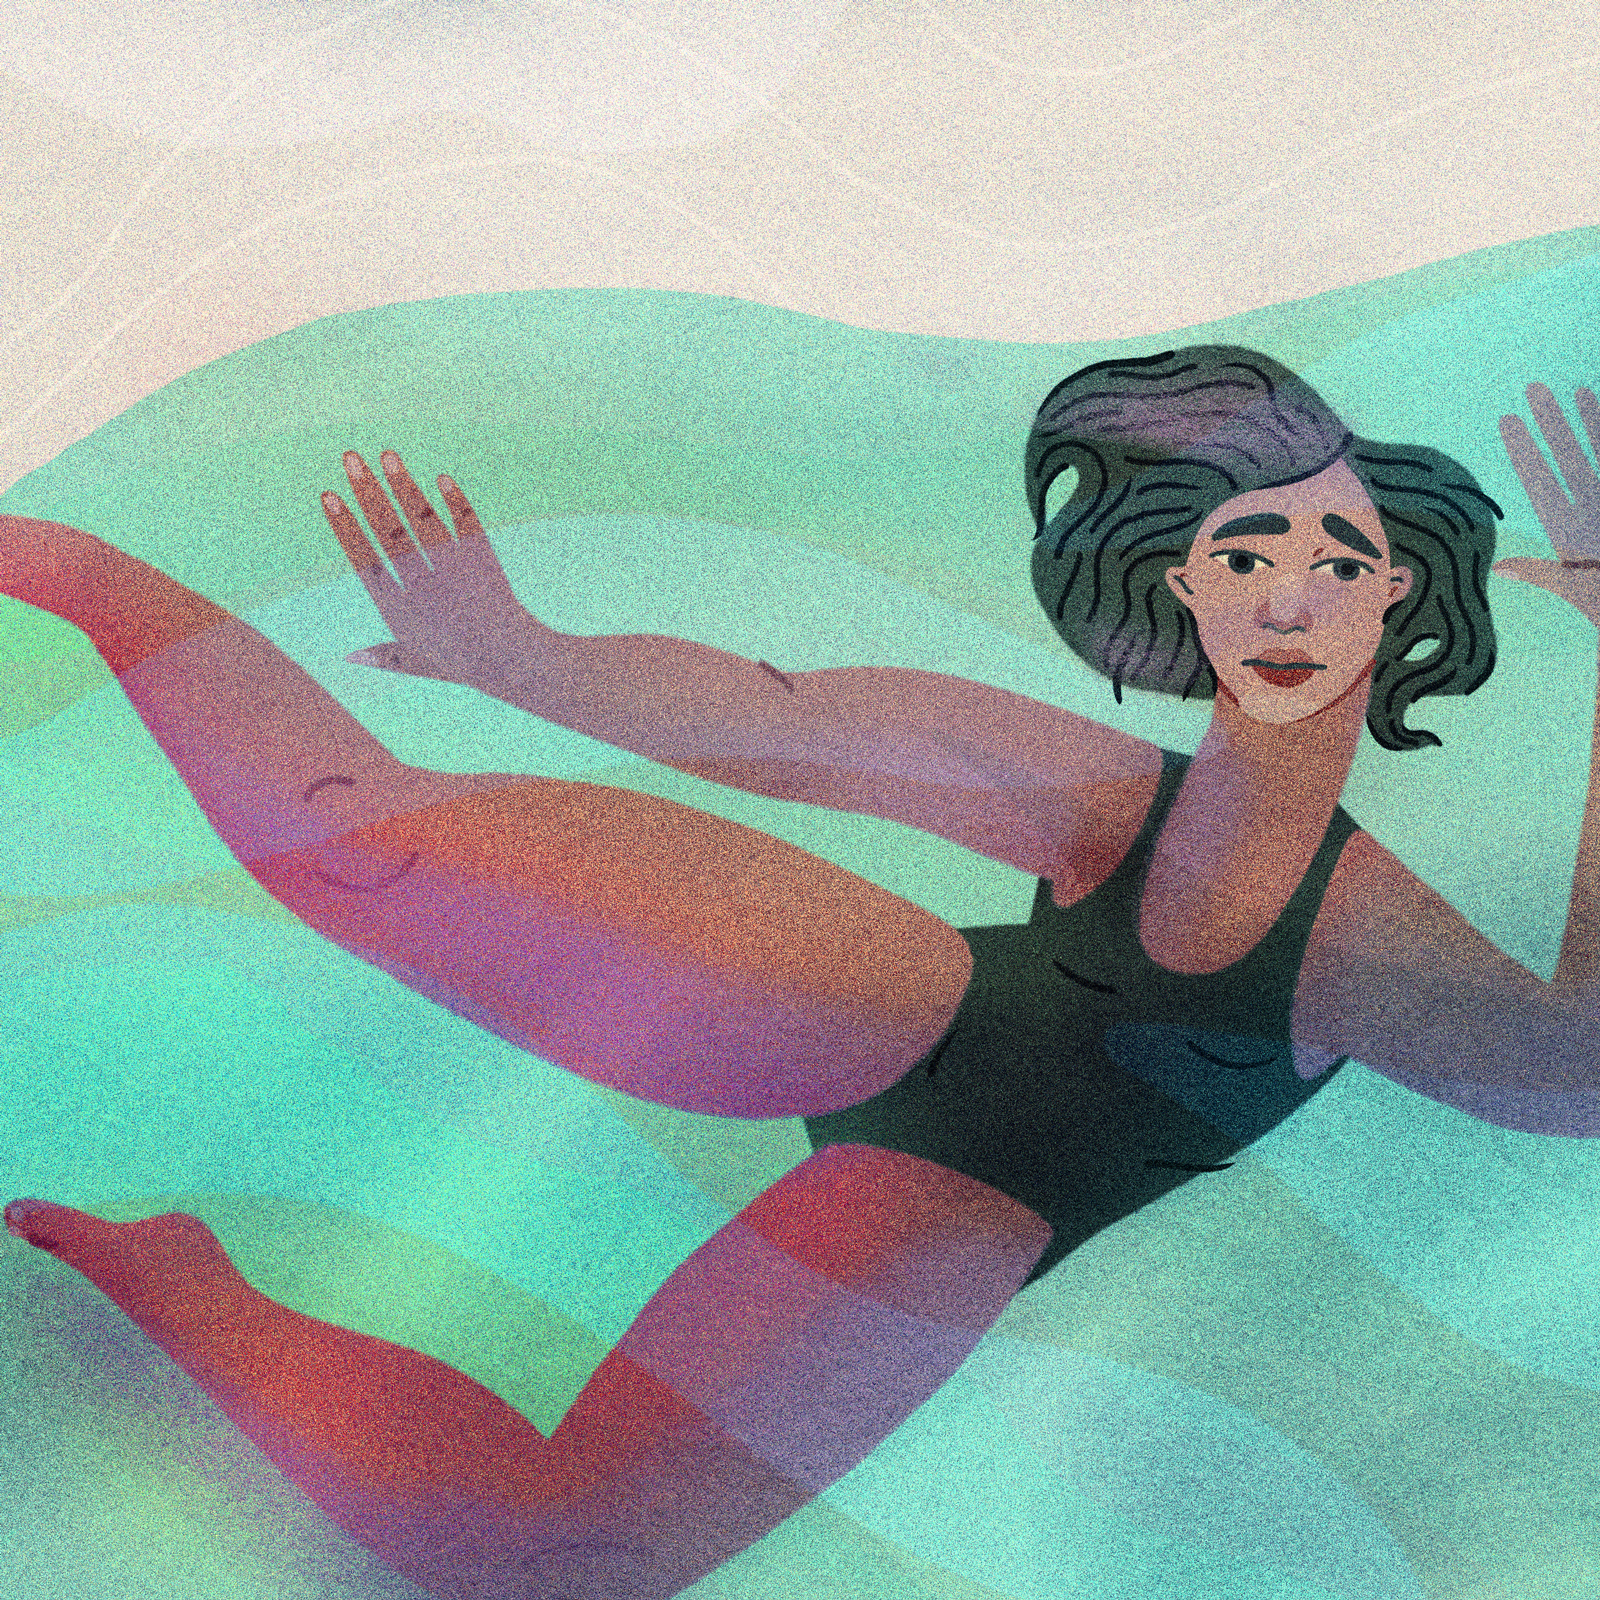 swimmies.png